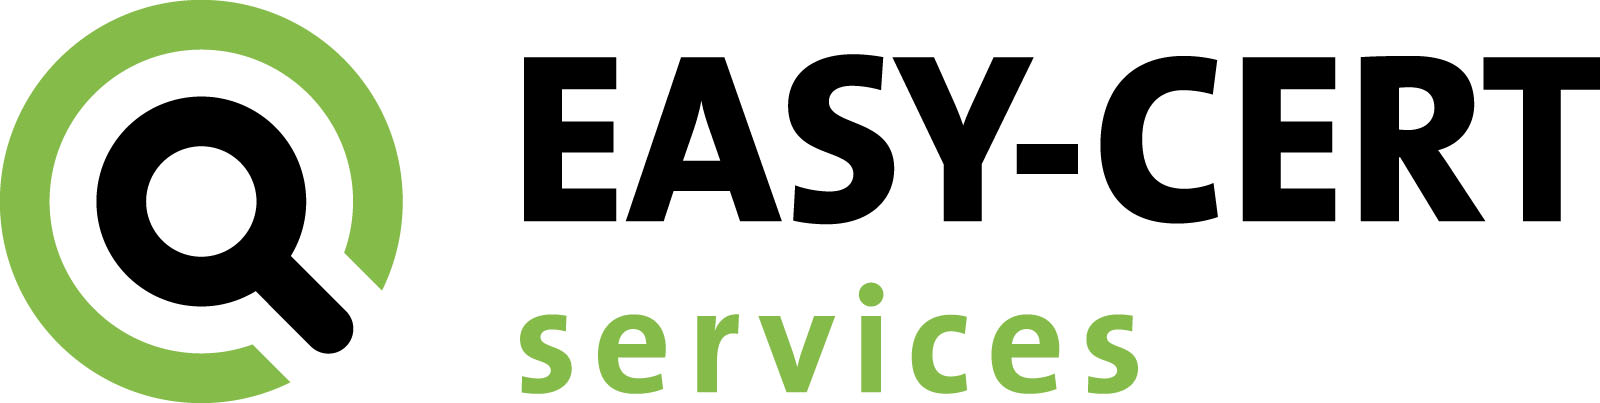 EASY-CERT services AG